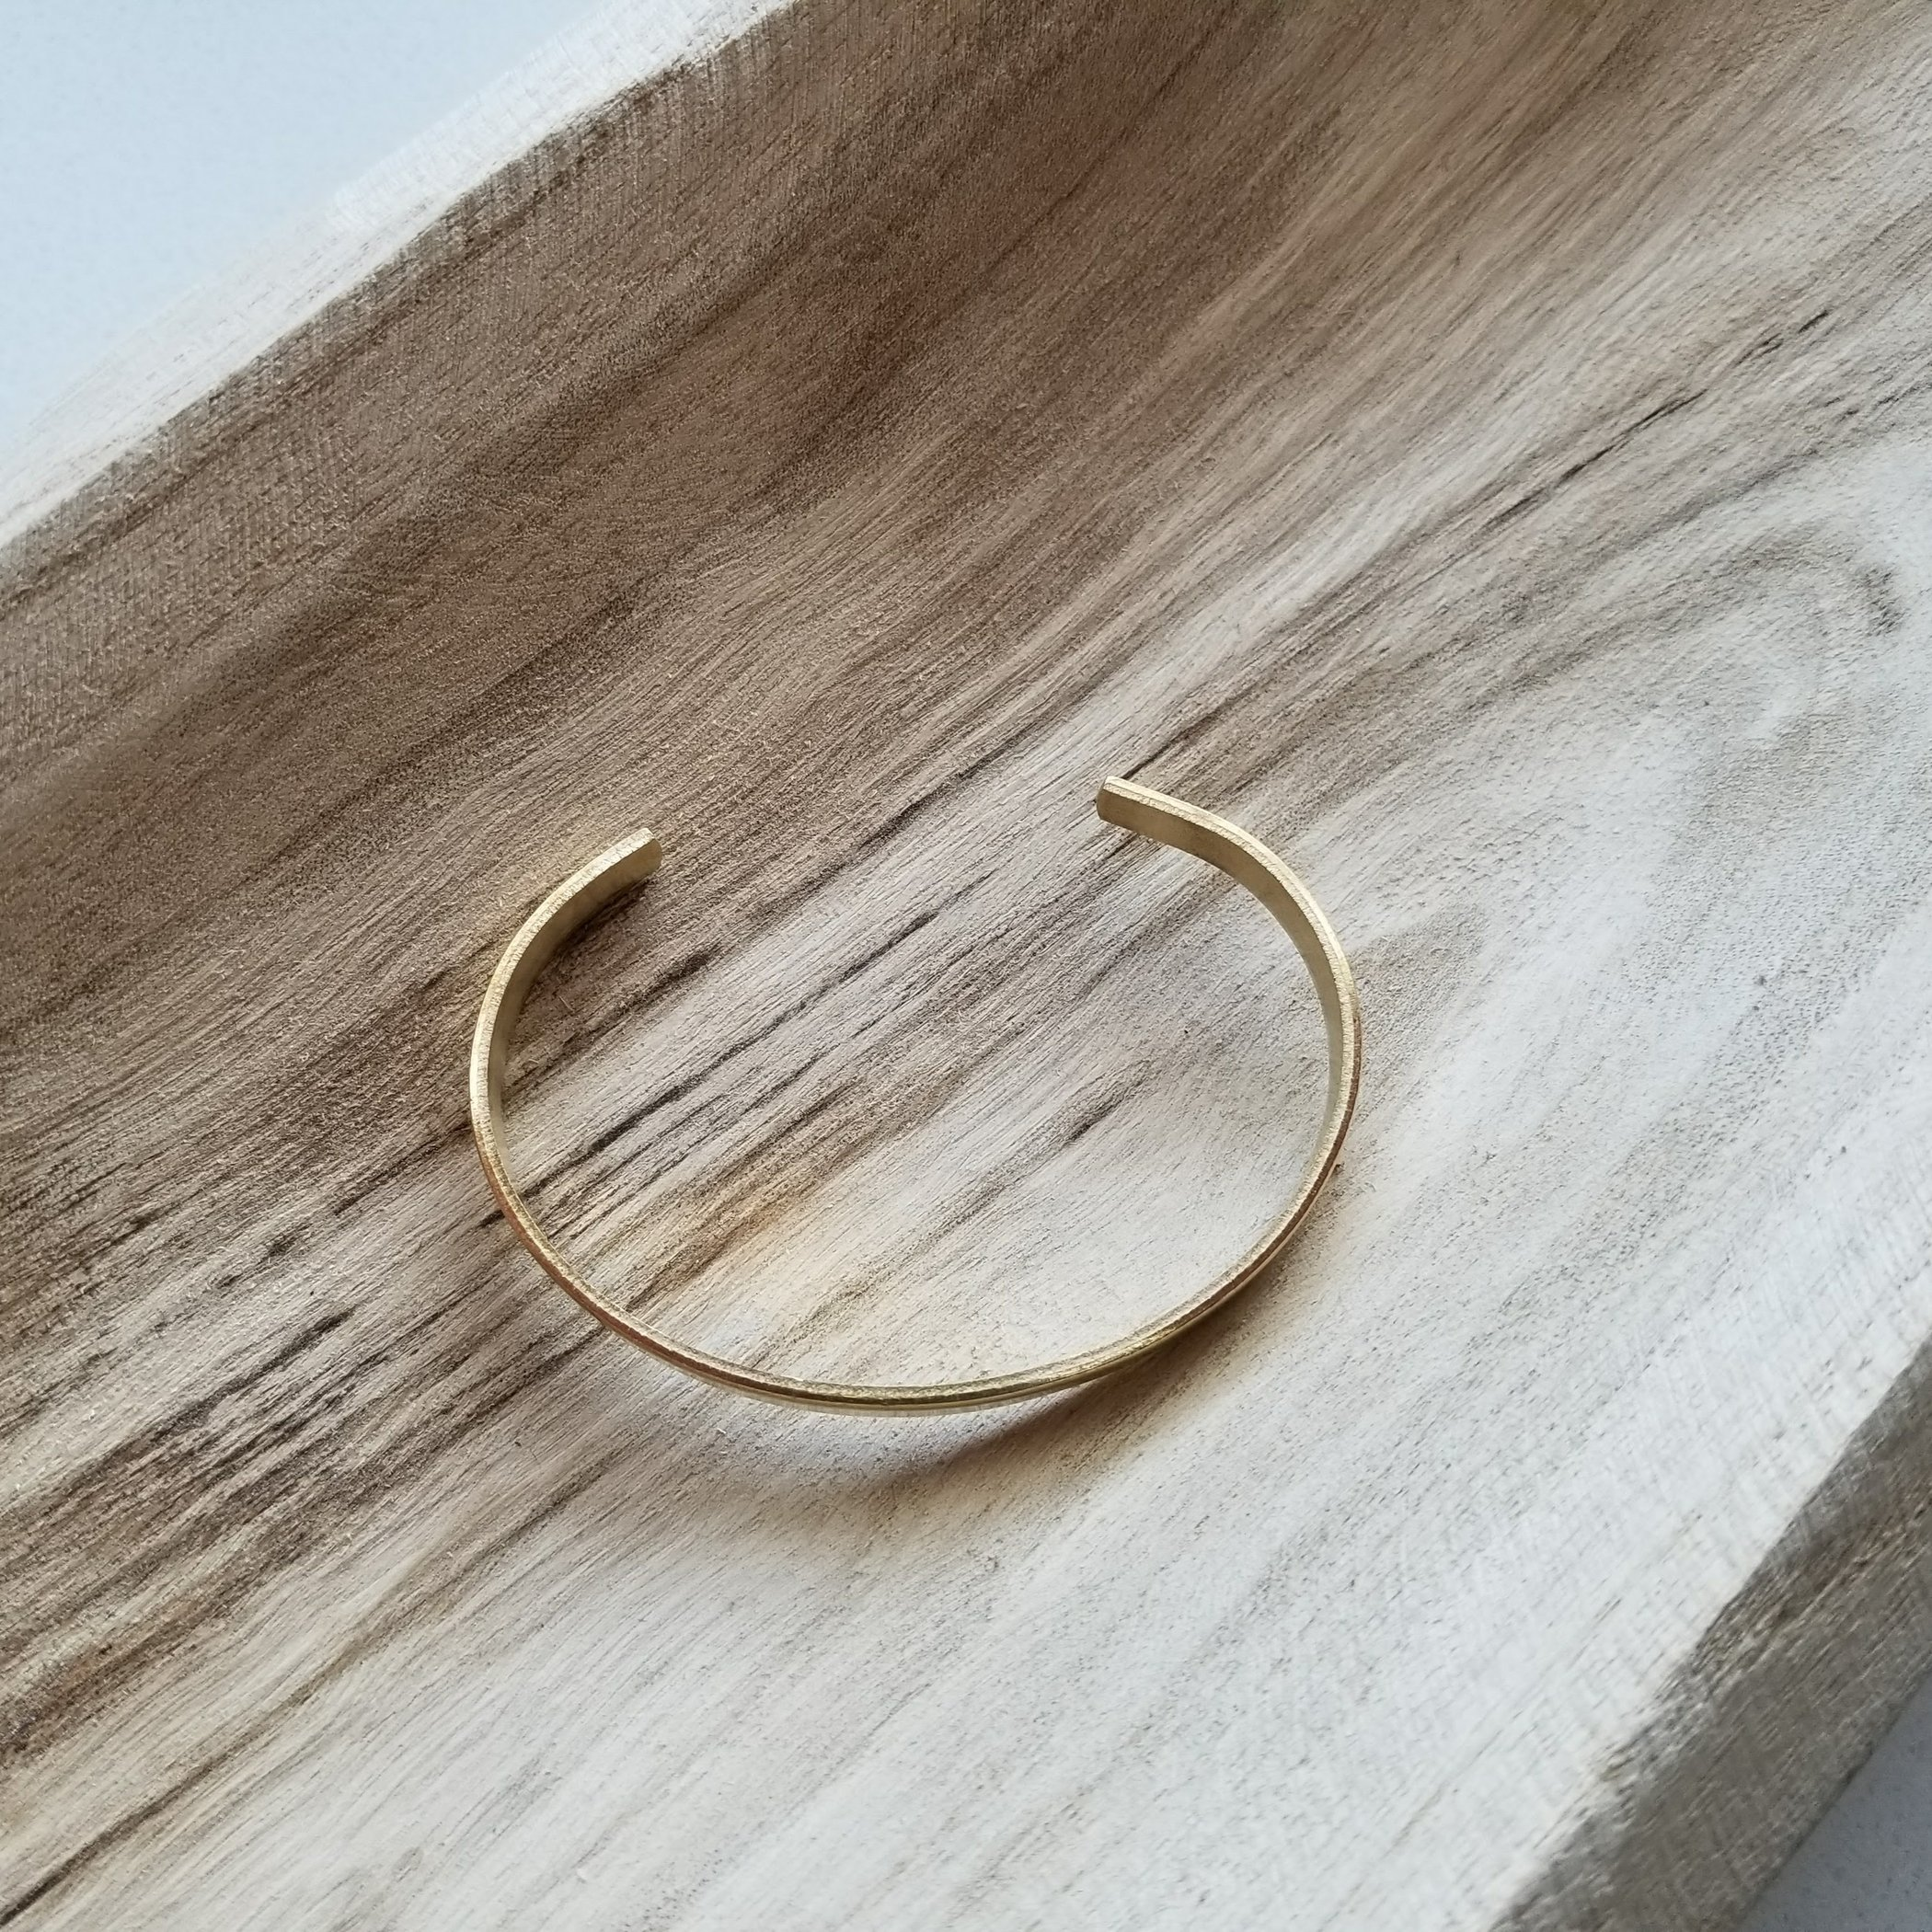 A Kind Boutique ABLE Cuff | Kind Gift Guide akindjourney.com